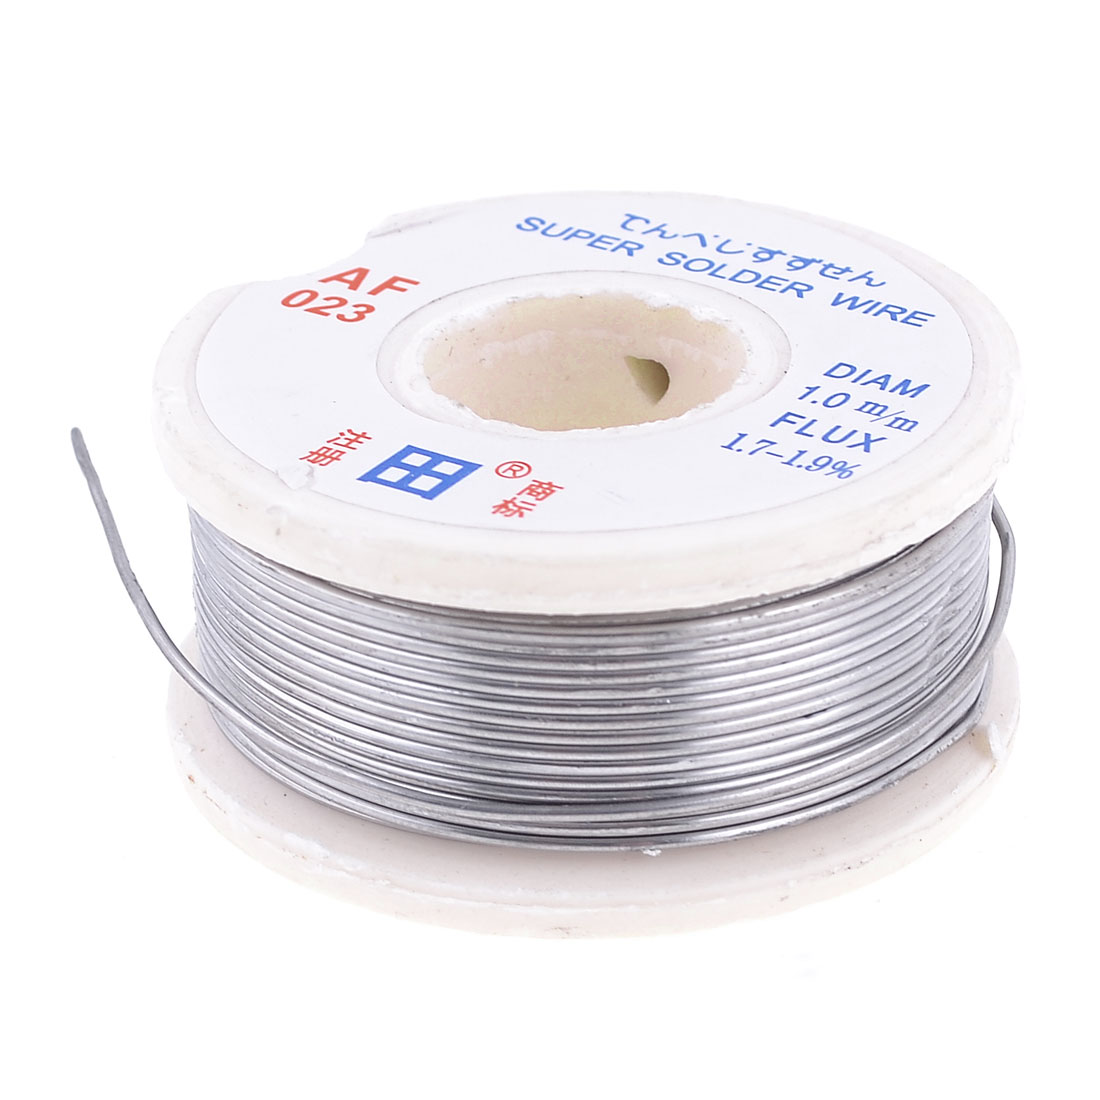 1.0mm Dia 63/37 Tin Lead Alloy Rosin Core Melting Solder Wire Spool Reel